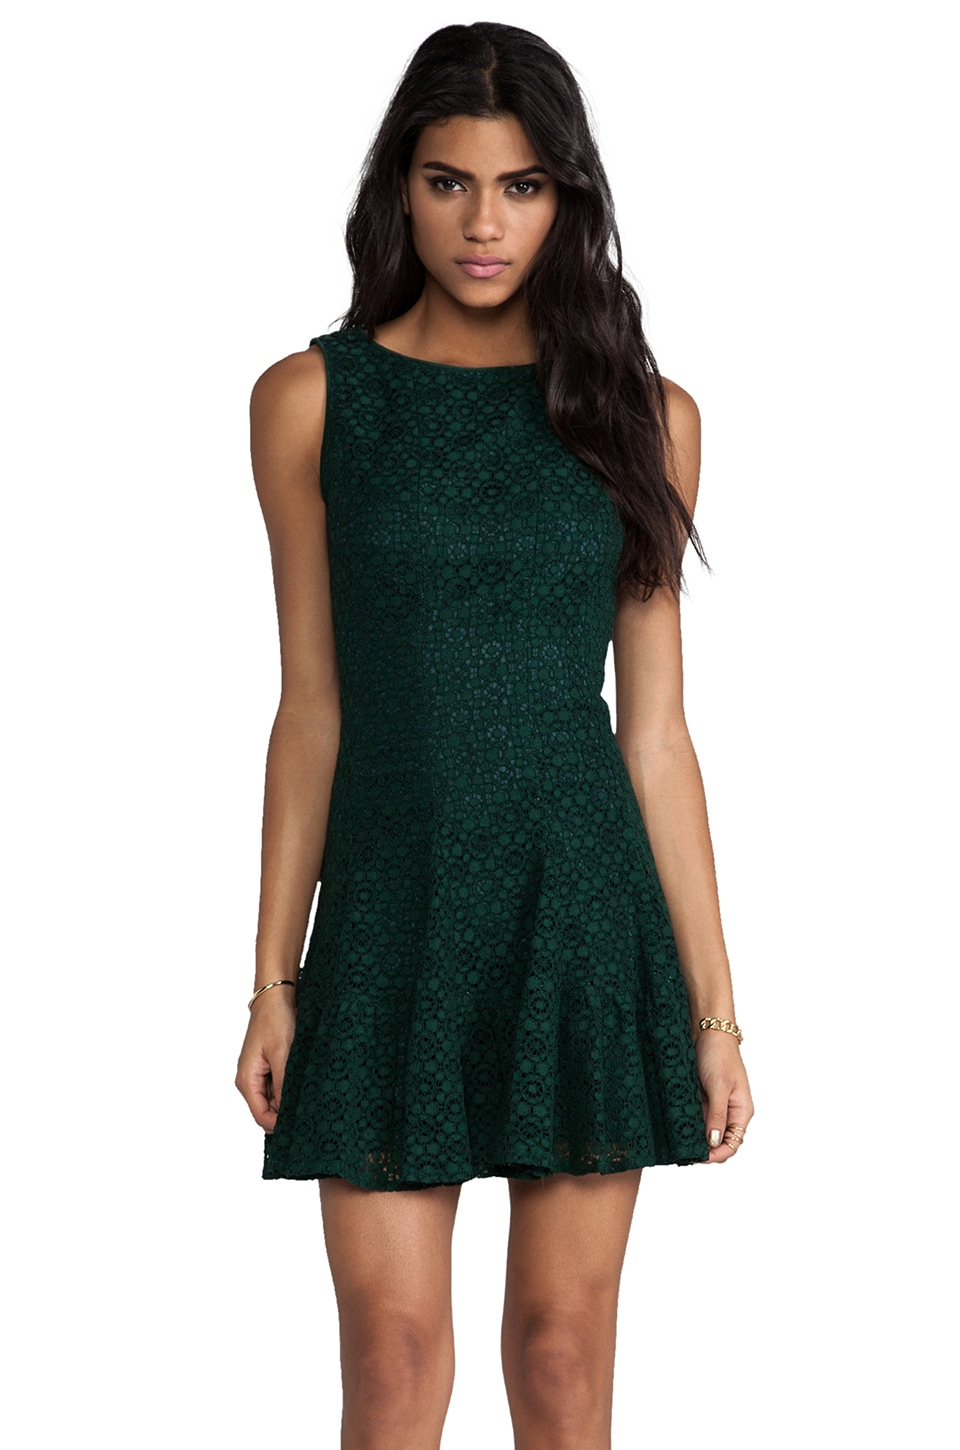 Anna Sui Re-Embroidered Lace Dress in Forest Green